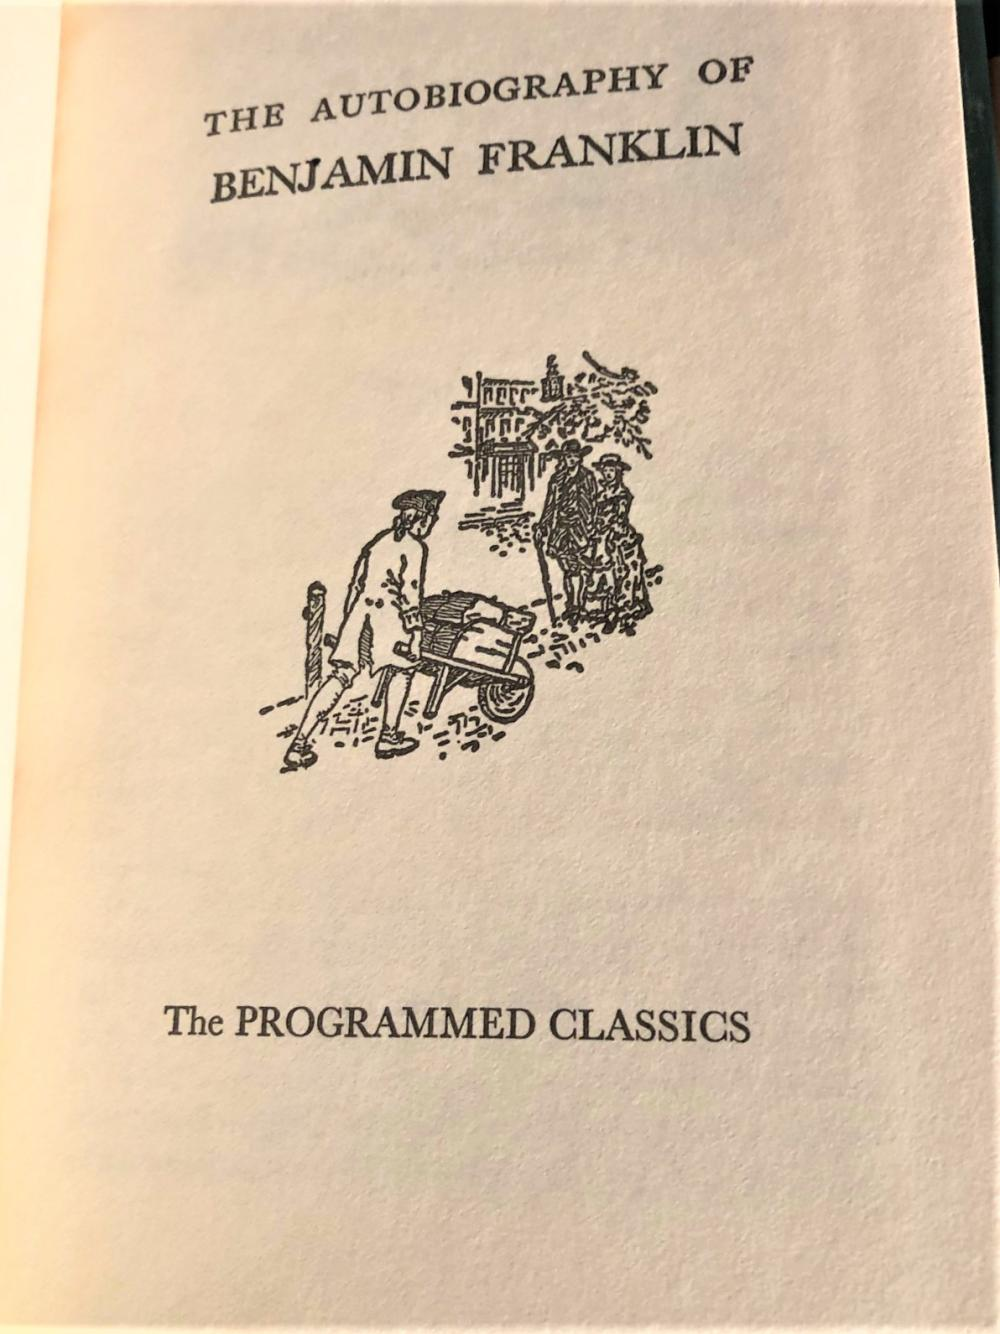 THE PROGRAMMED CLASSICS BY HOUGHTON MIFFLIN AND COMPANY - 16 VOLUMES, 1923